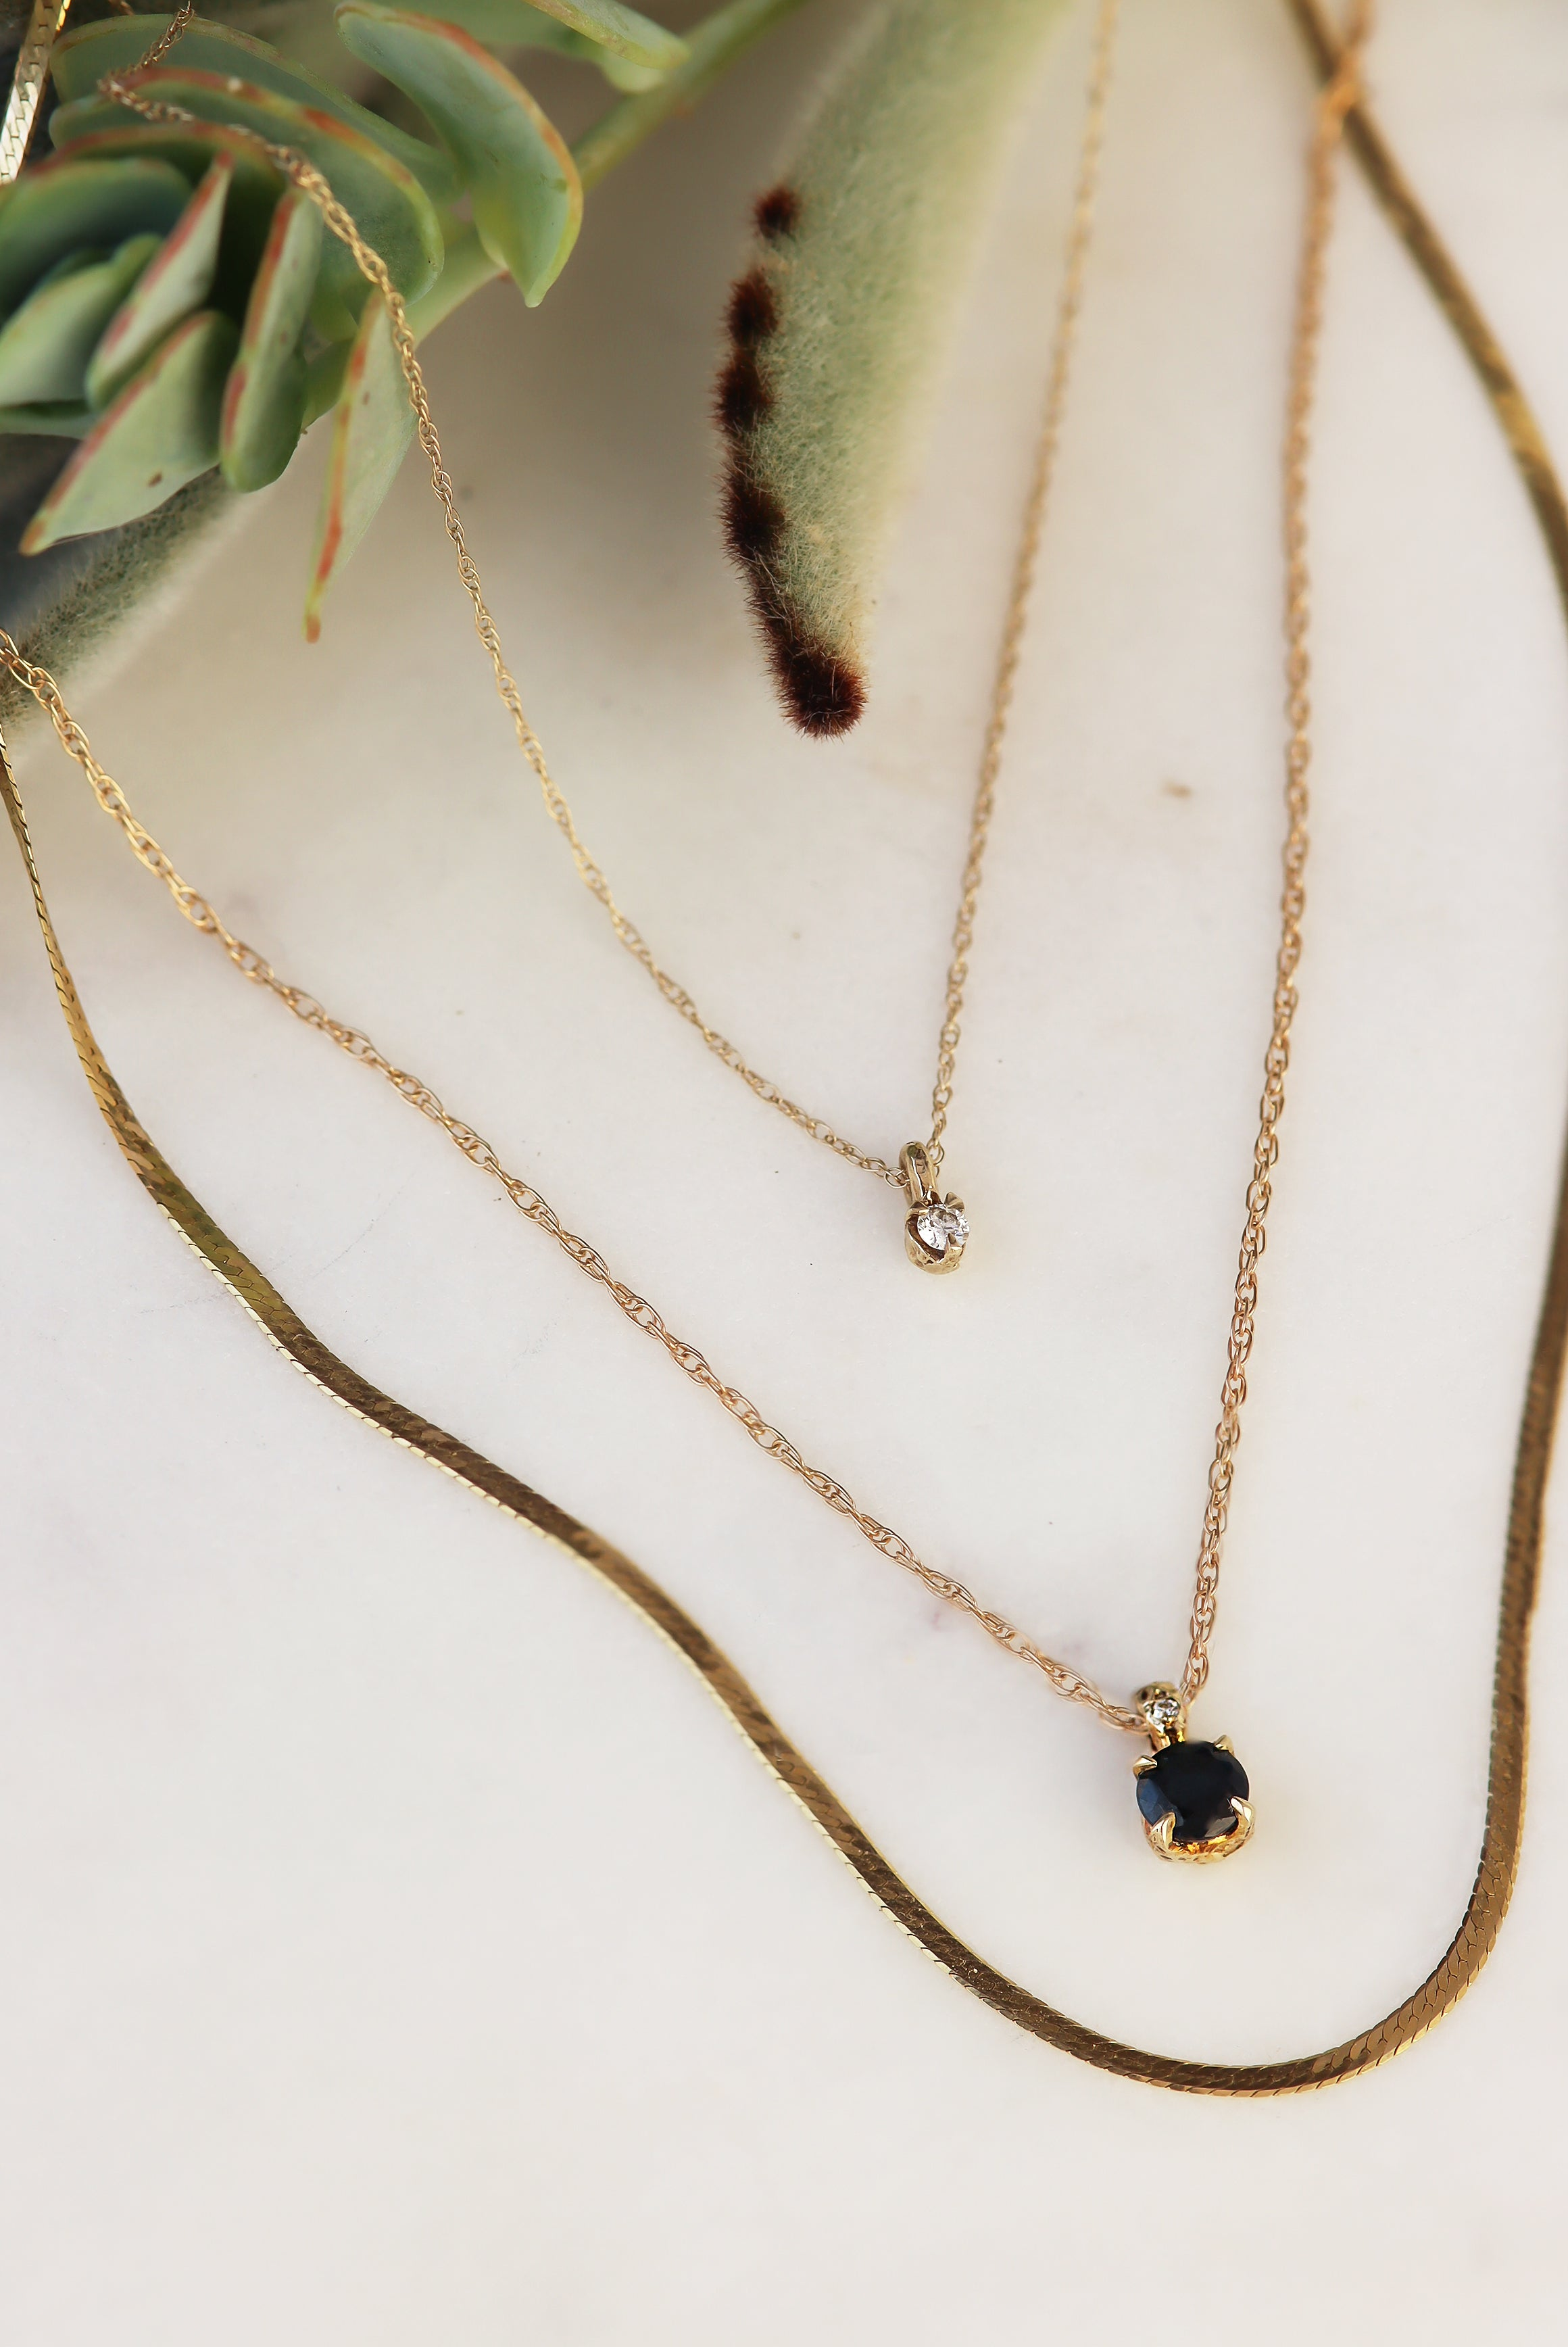 3-Bridal-Necklaces-To-Help-You-Look-Your-Best-On-Your-Big-Day!